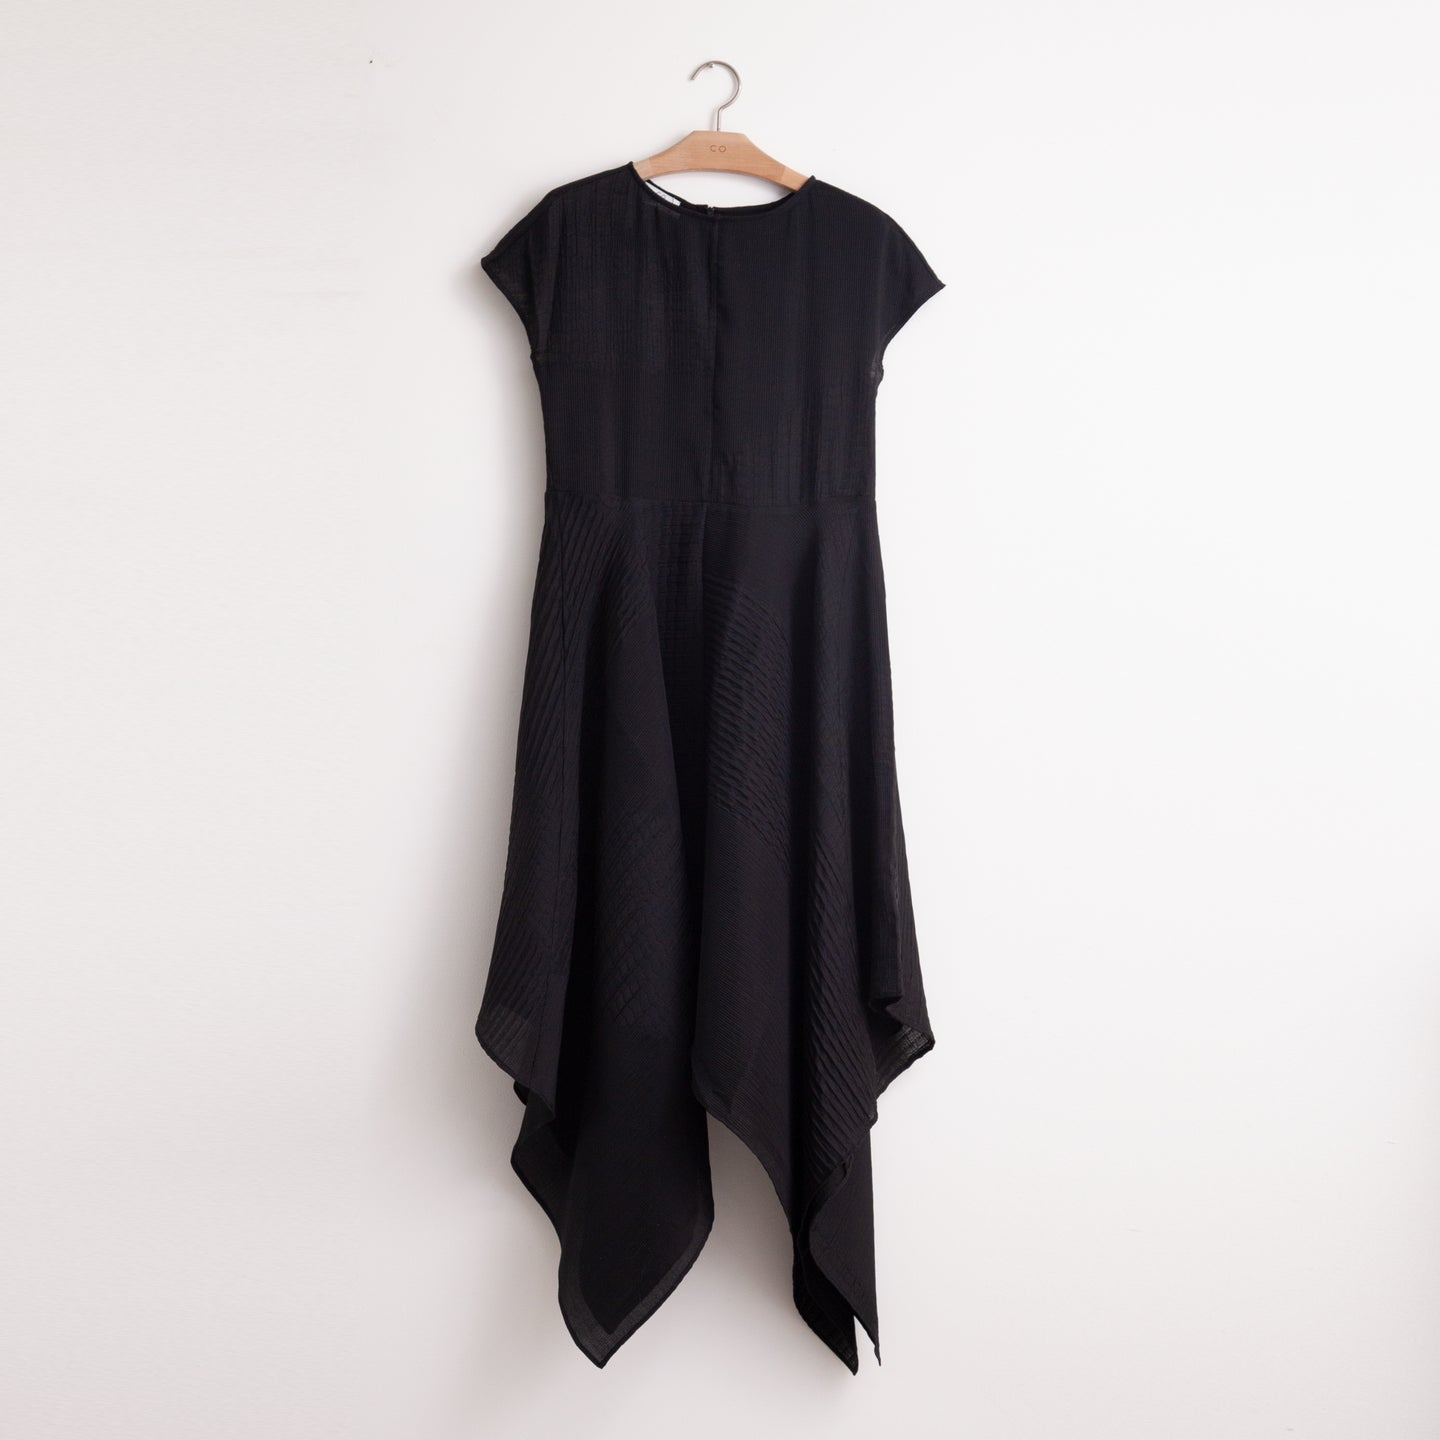 CO - Shortsleeve round neck dress with asymmetrical hem and set in waist in black lightweight textured crepe